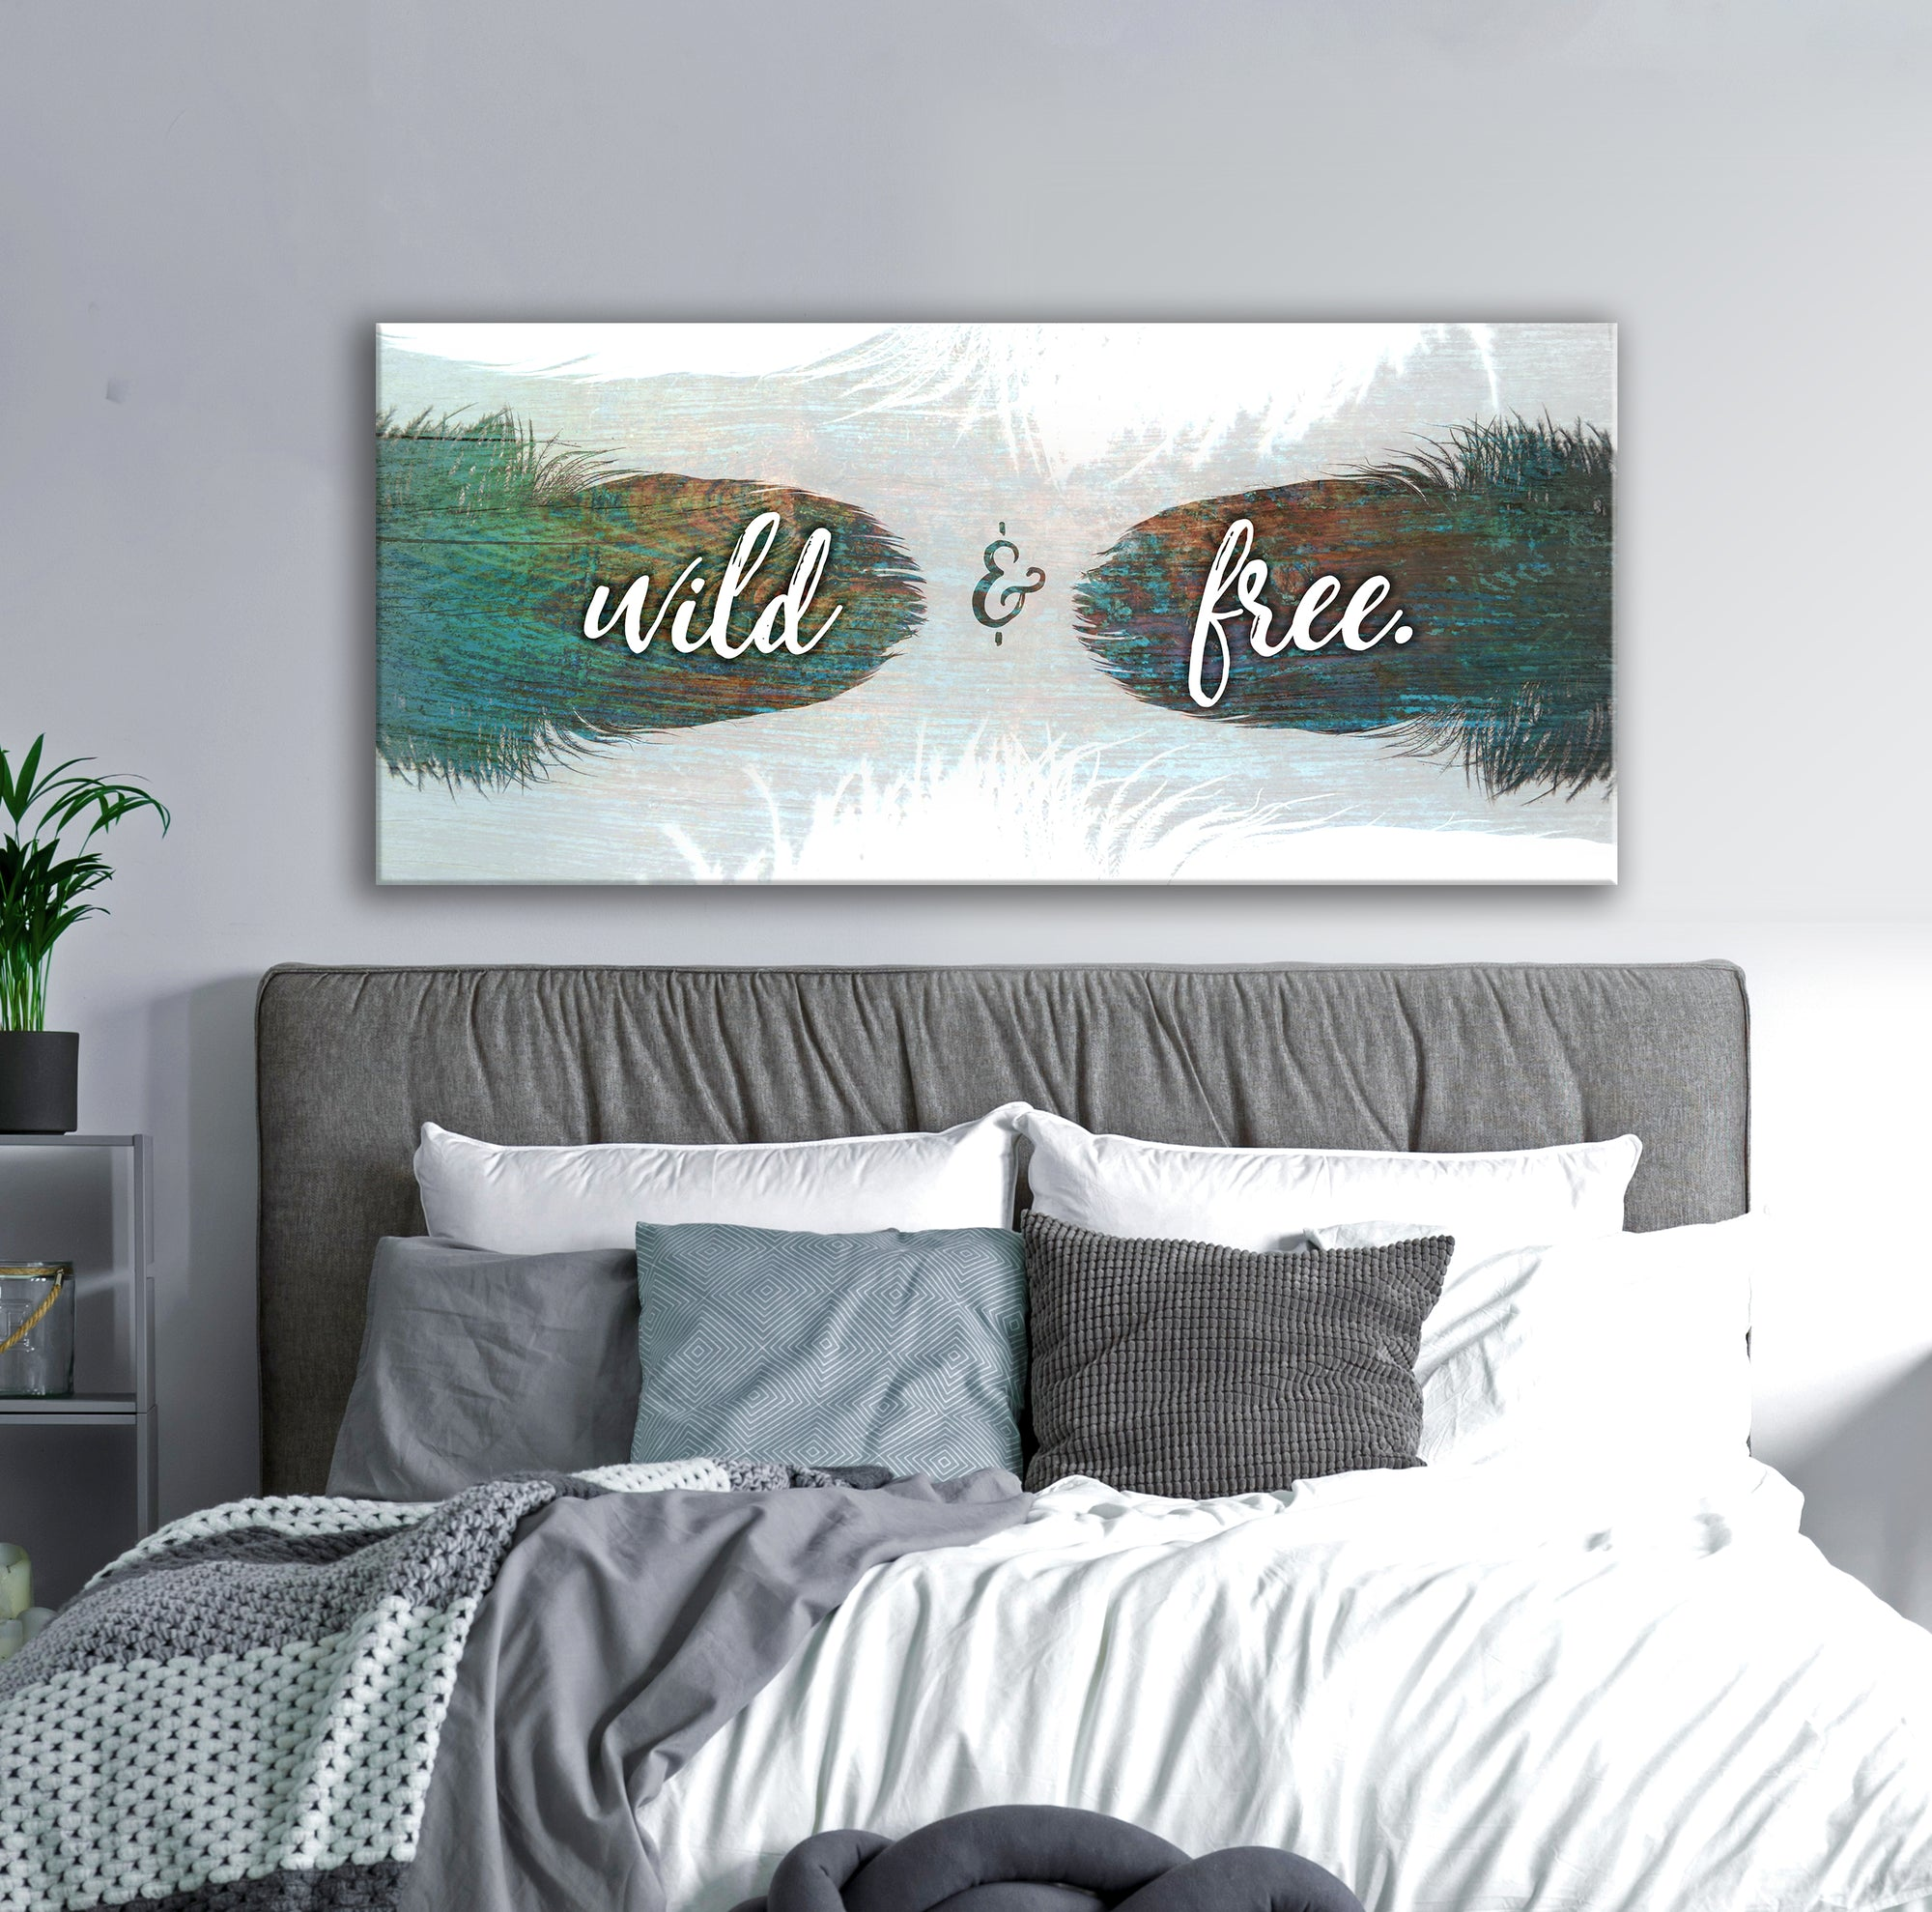 Feather Wall Art: Feather Wild and Free (Wood Frame Ready To Hang)